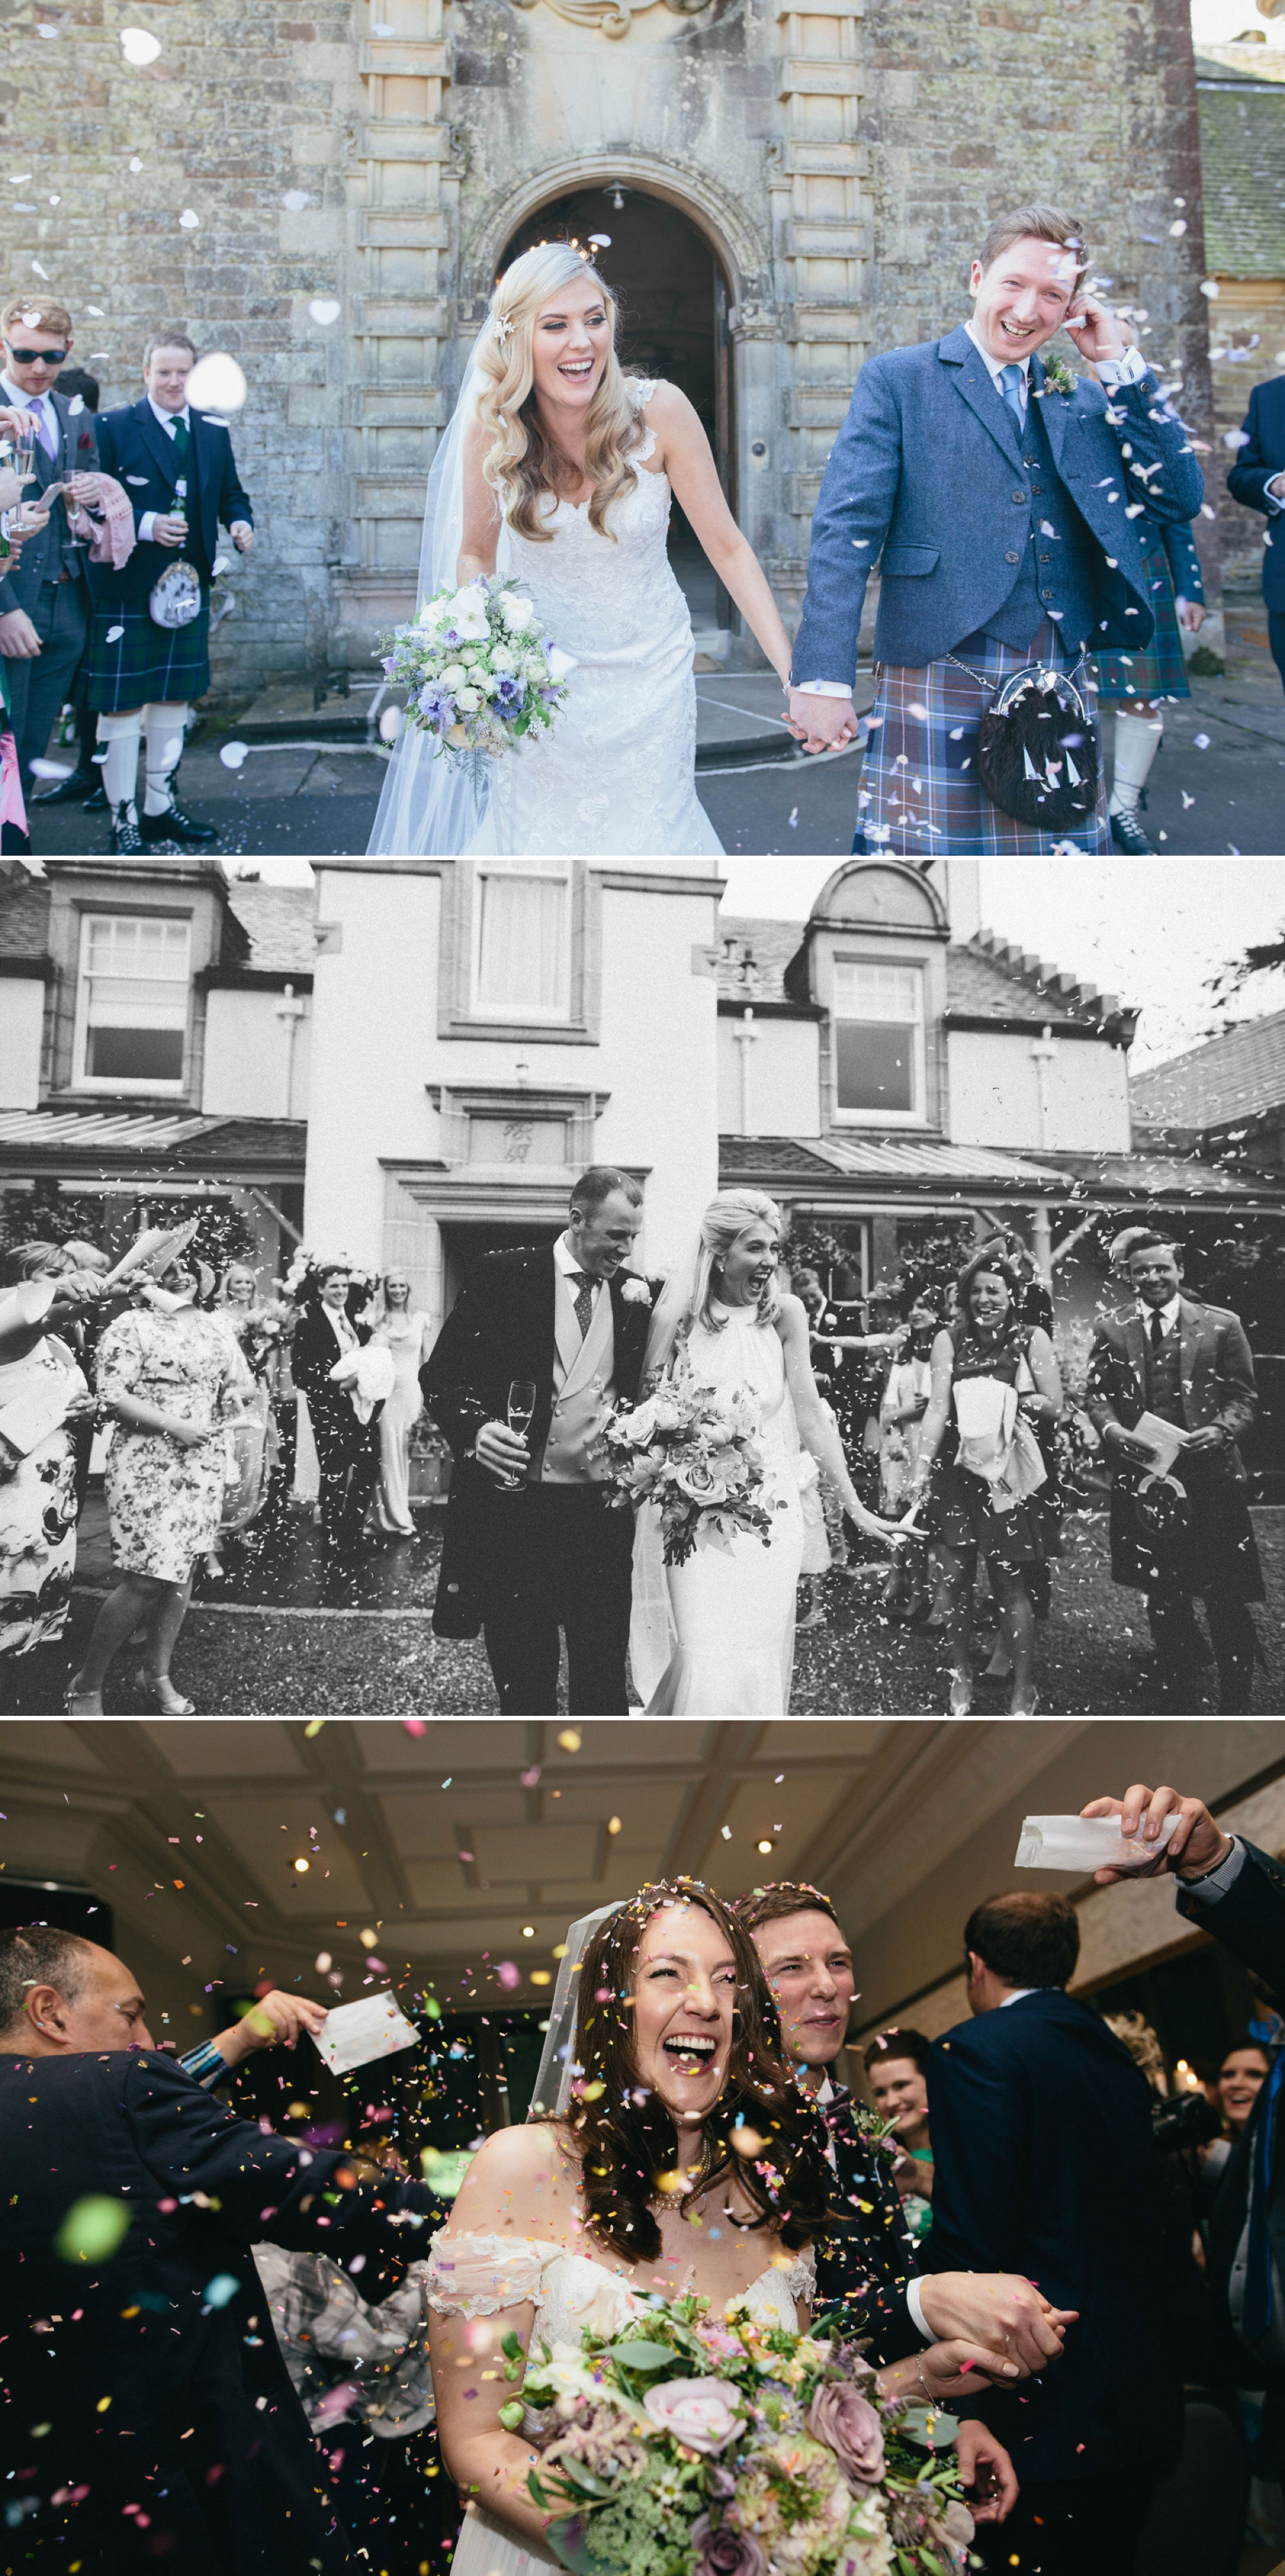 Alternative Natural Quirky Wedding Photographs UK Scotland 110.jpg